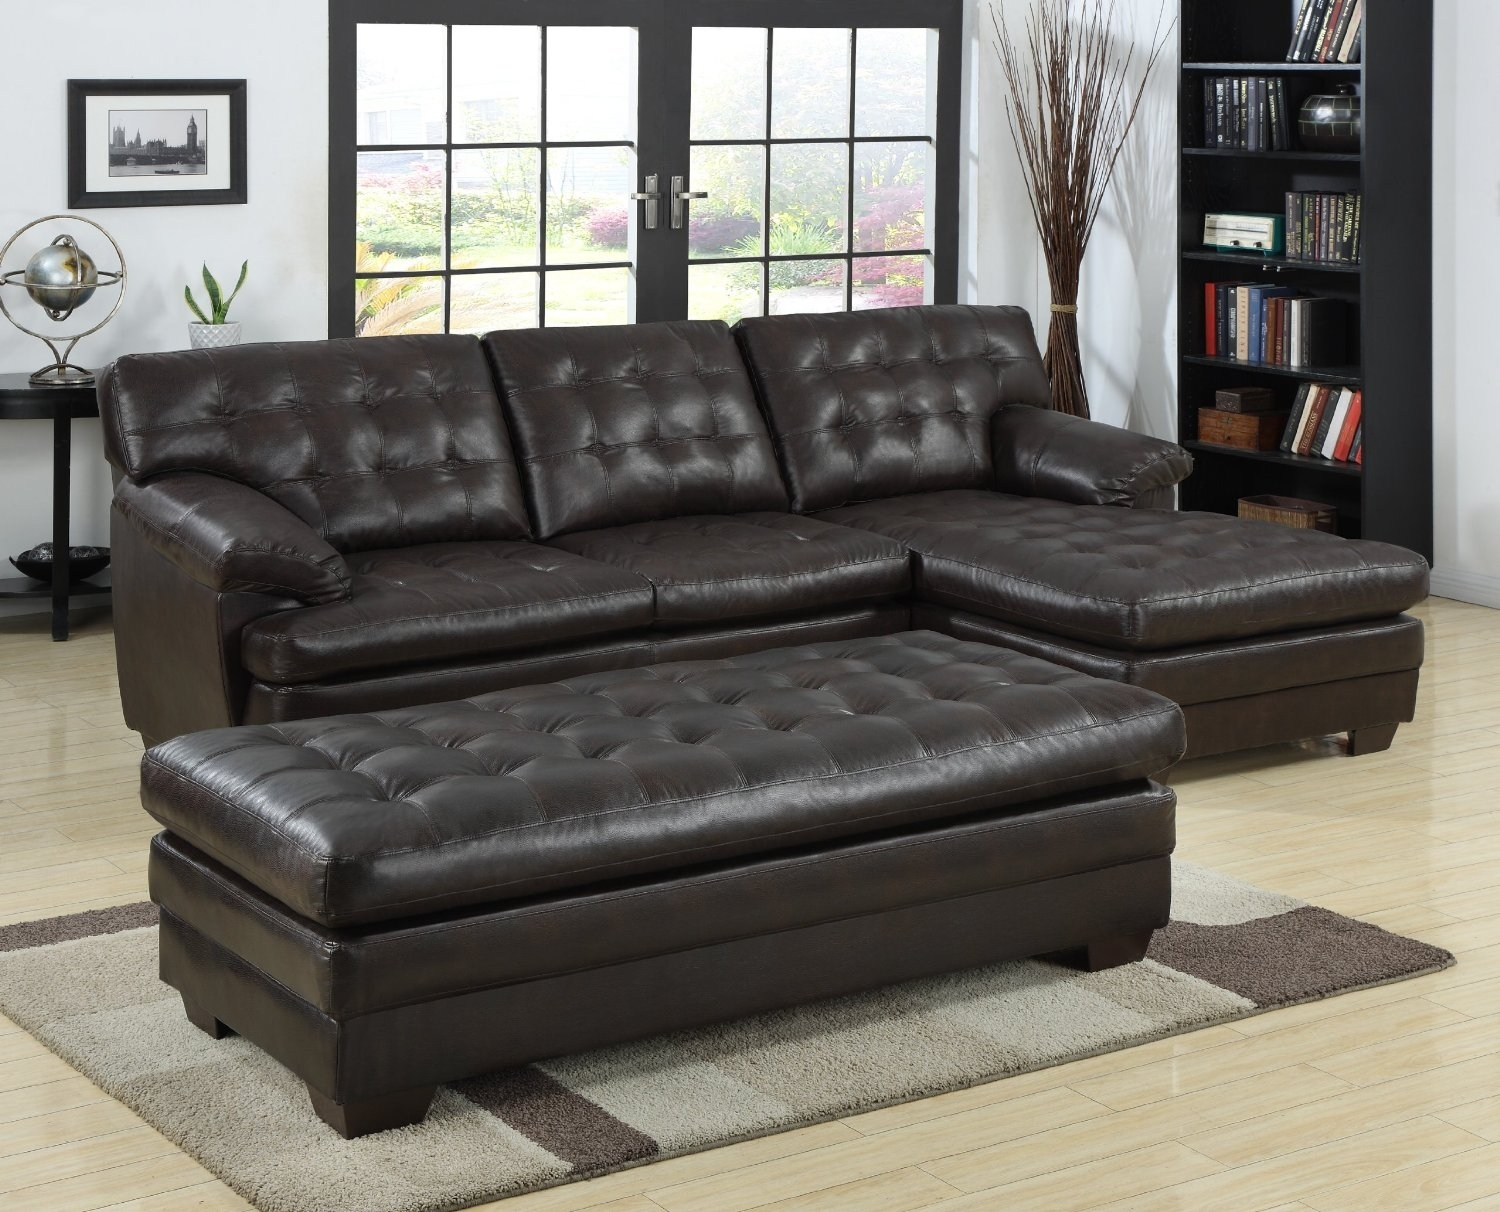 Black Tufted Leather Sectional Sofa With Chaise And Bench Seat Plus With Tufted Sectional Sofas With Chaise (View 9 of 10)